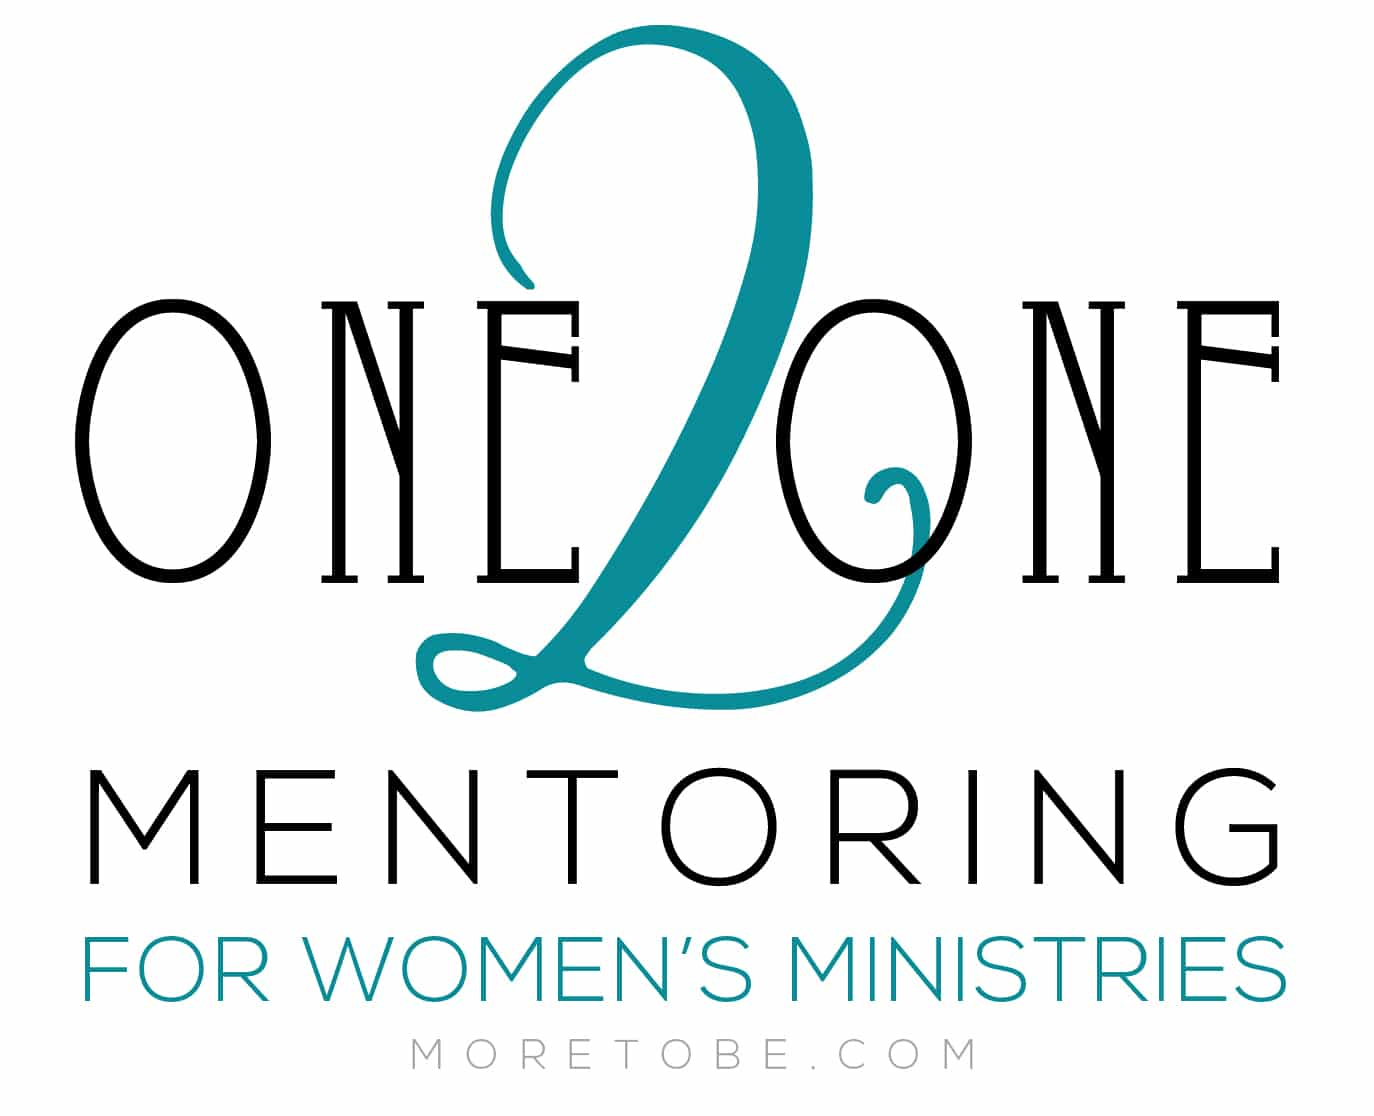 One2One Mentoring for Women's Ministries